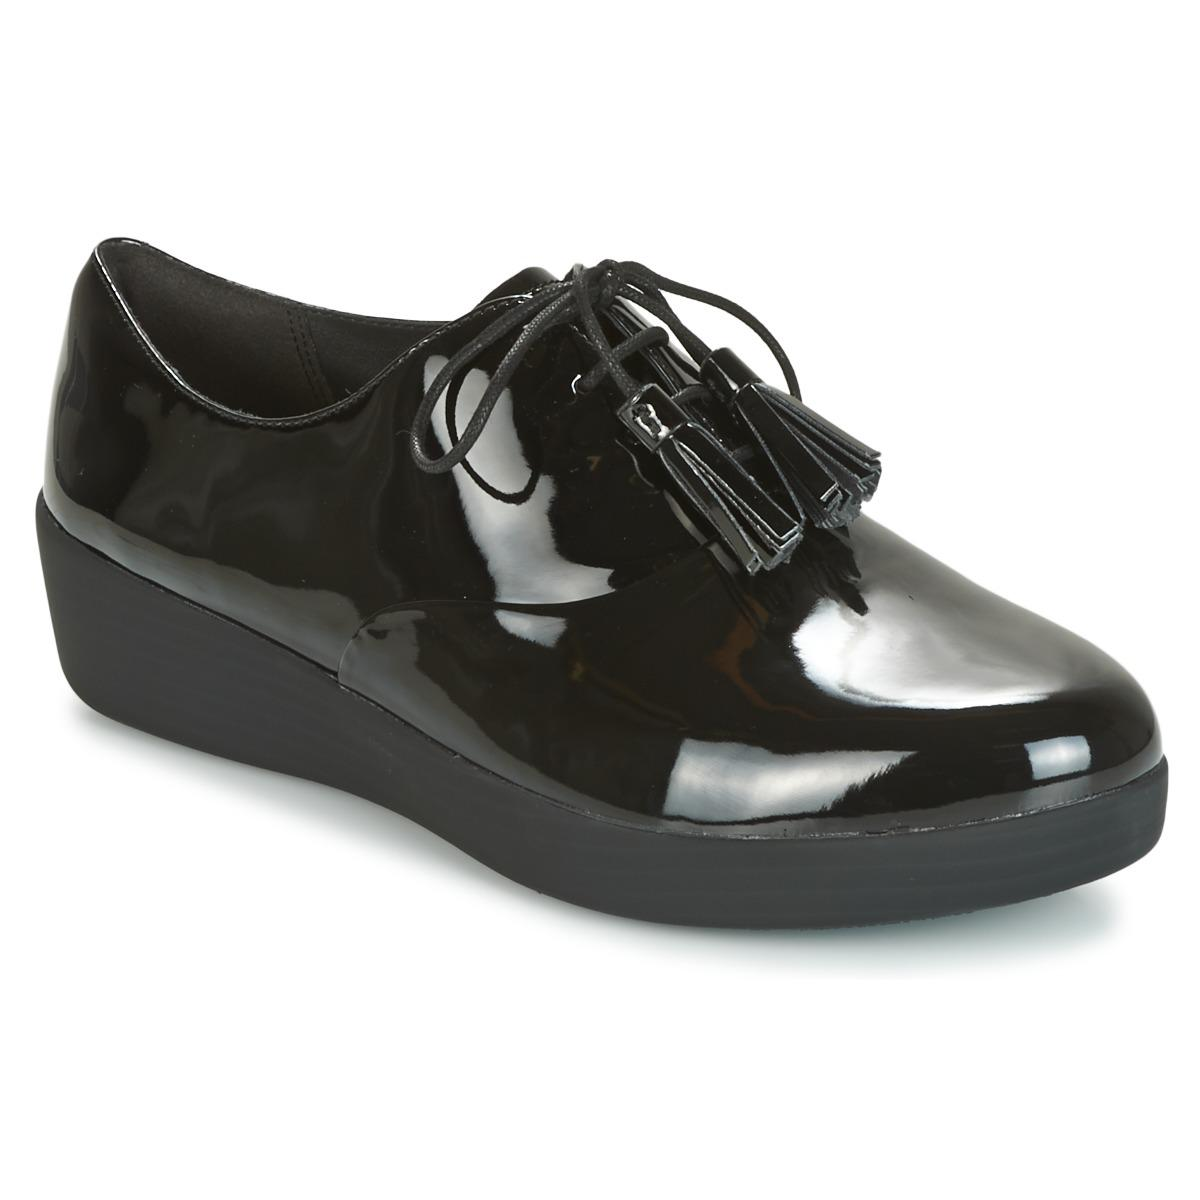 069ae3fe6102 Fitflop Classic Tassel Superoxford Women s Casual Shoes In Black in ...